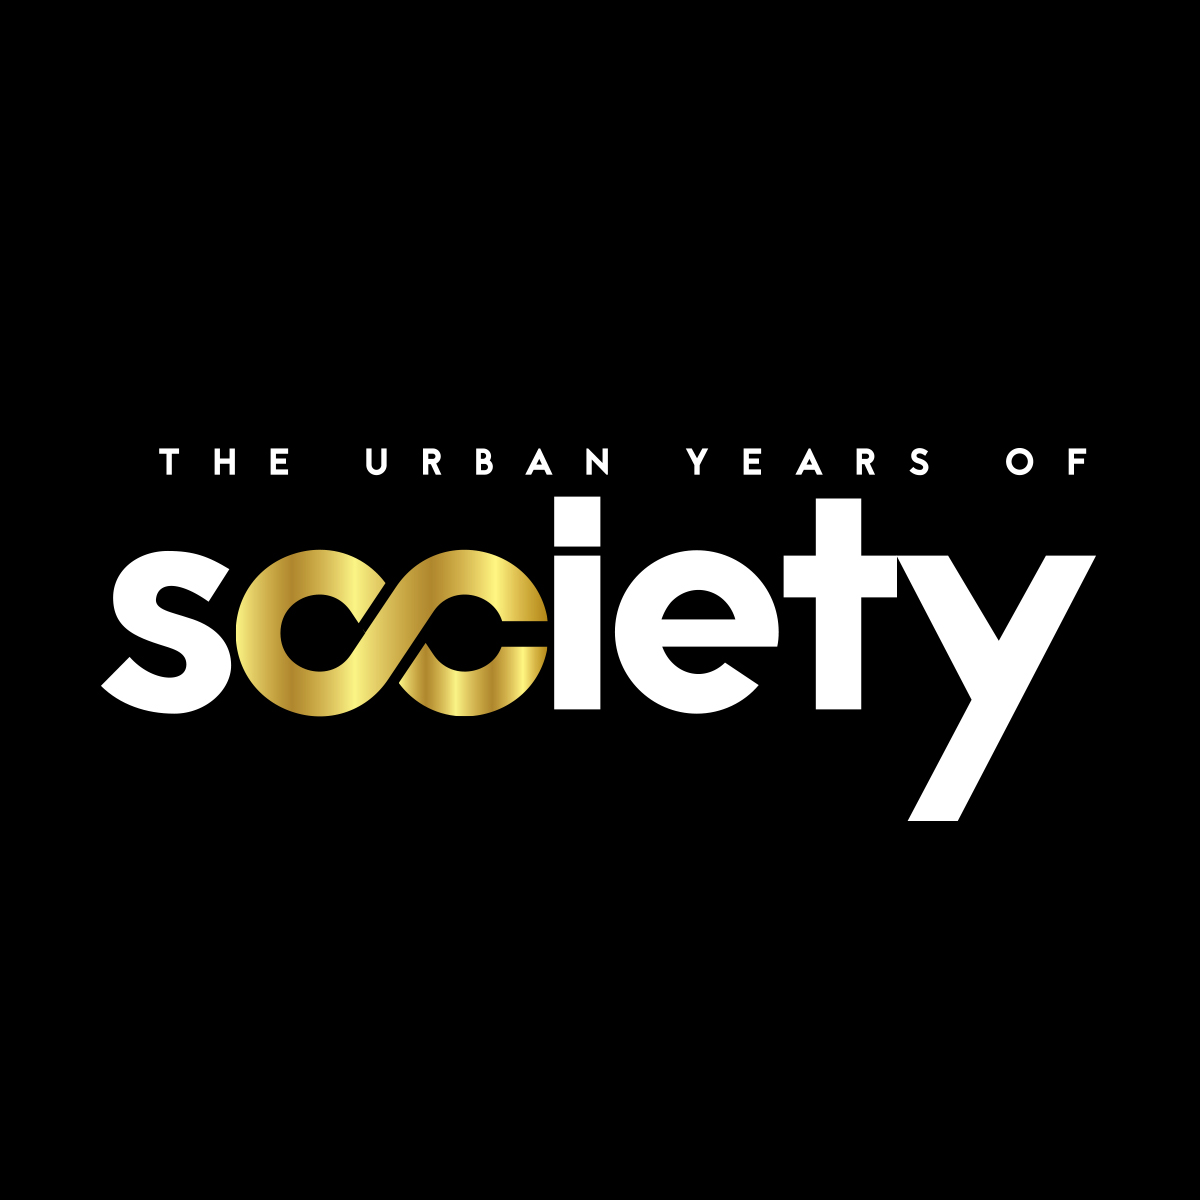 The Urban Years of Society - Home To The Experience Of Online Clubbing & More